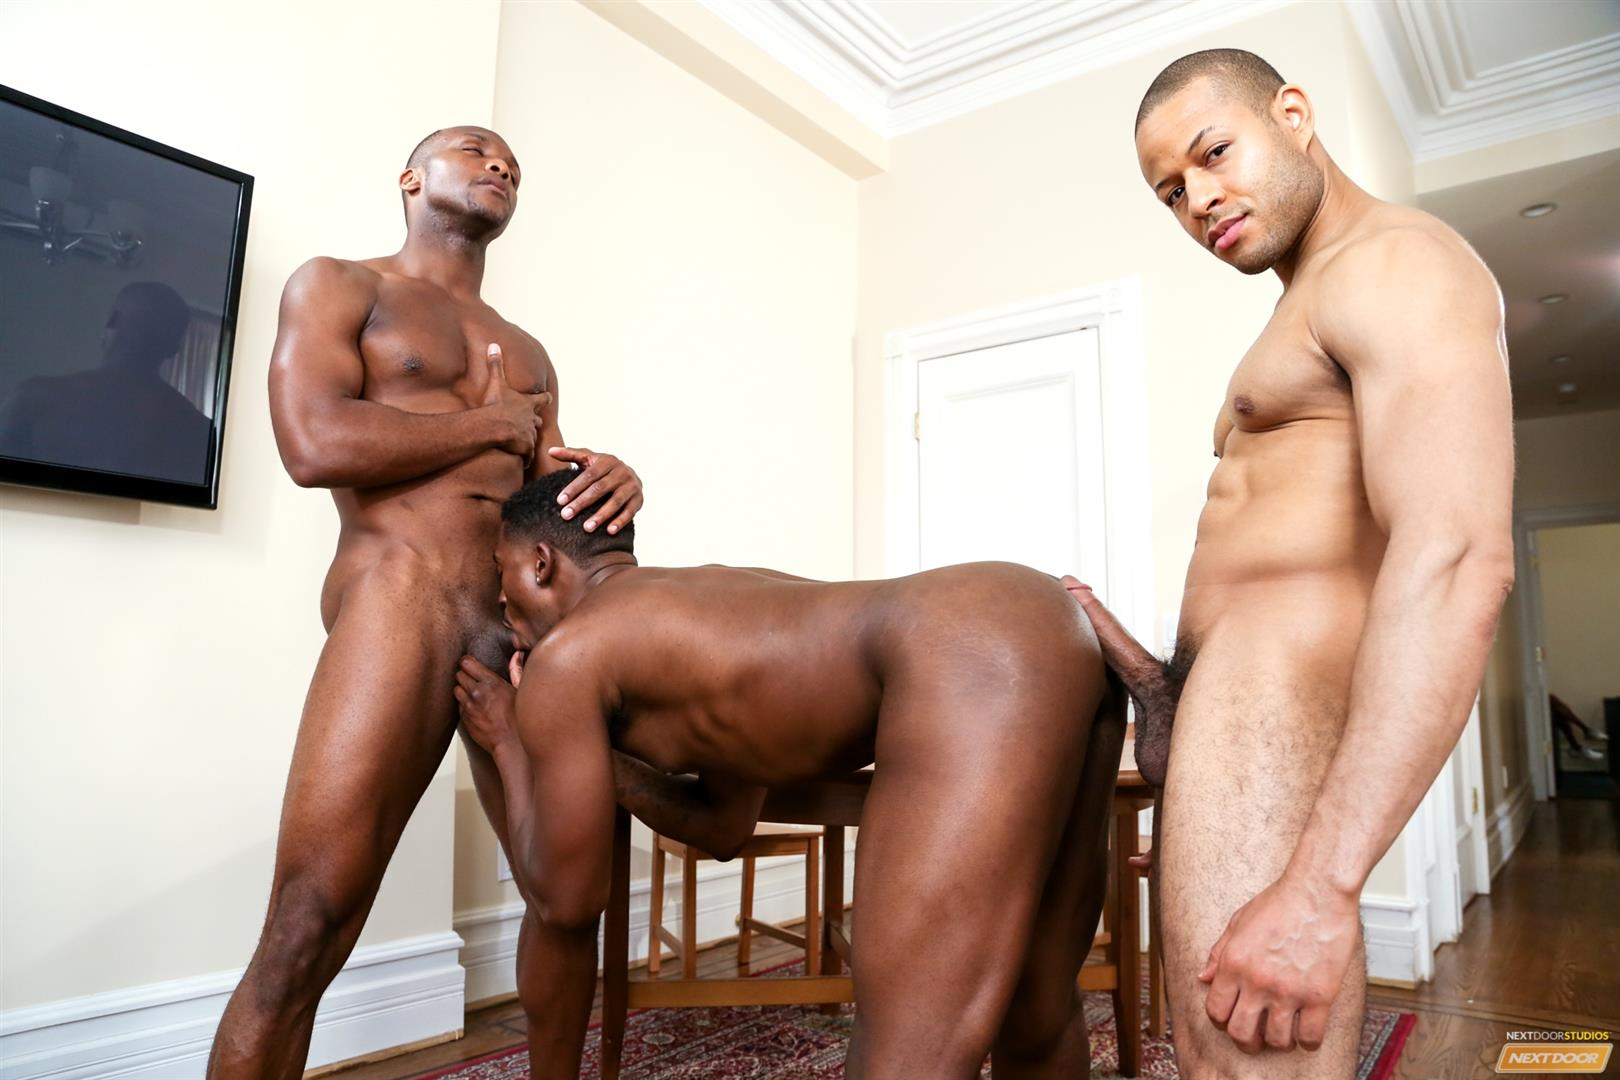 Next Door Ebony Krave Moore and Andre Donovan and Rex Cobra Big Black Cock Amateur Gay Porn 12